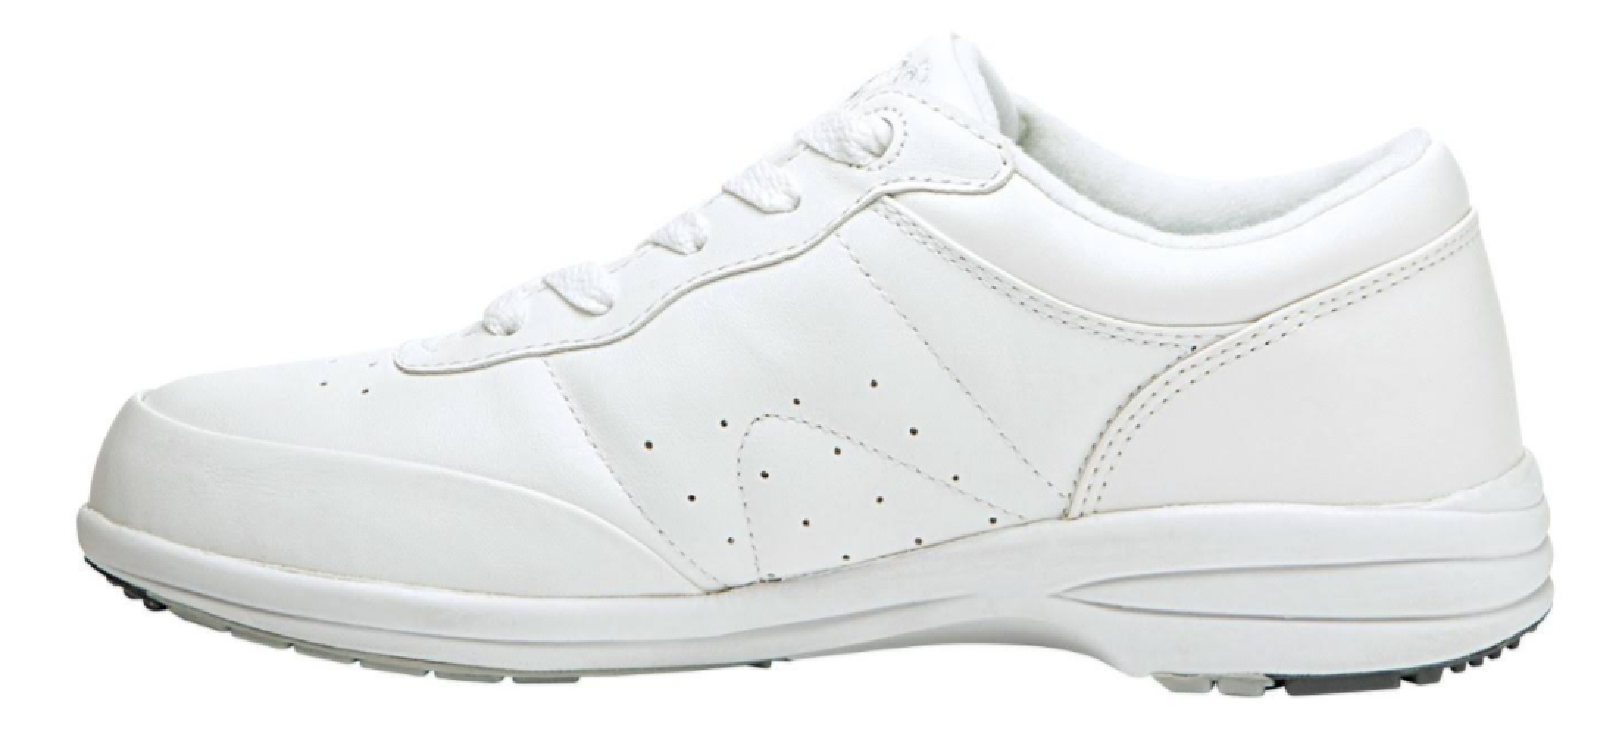 Propet Washable Walker Women's Leather Walking Shoes Size 8 4A (S) EXTRA NARROW